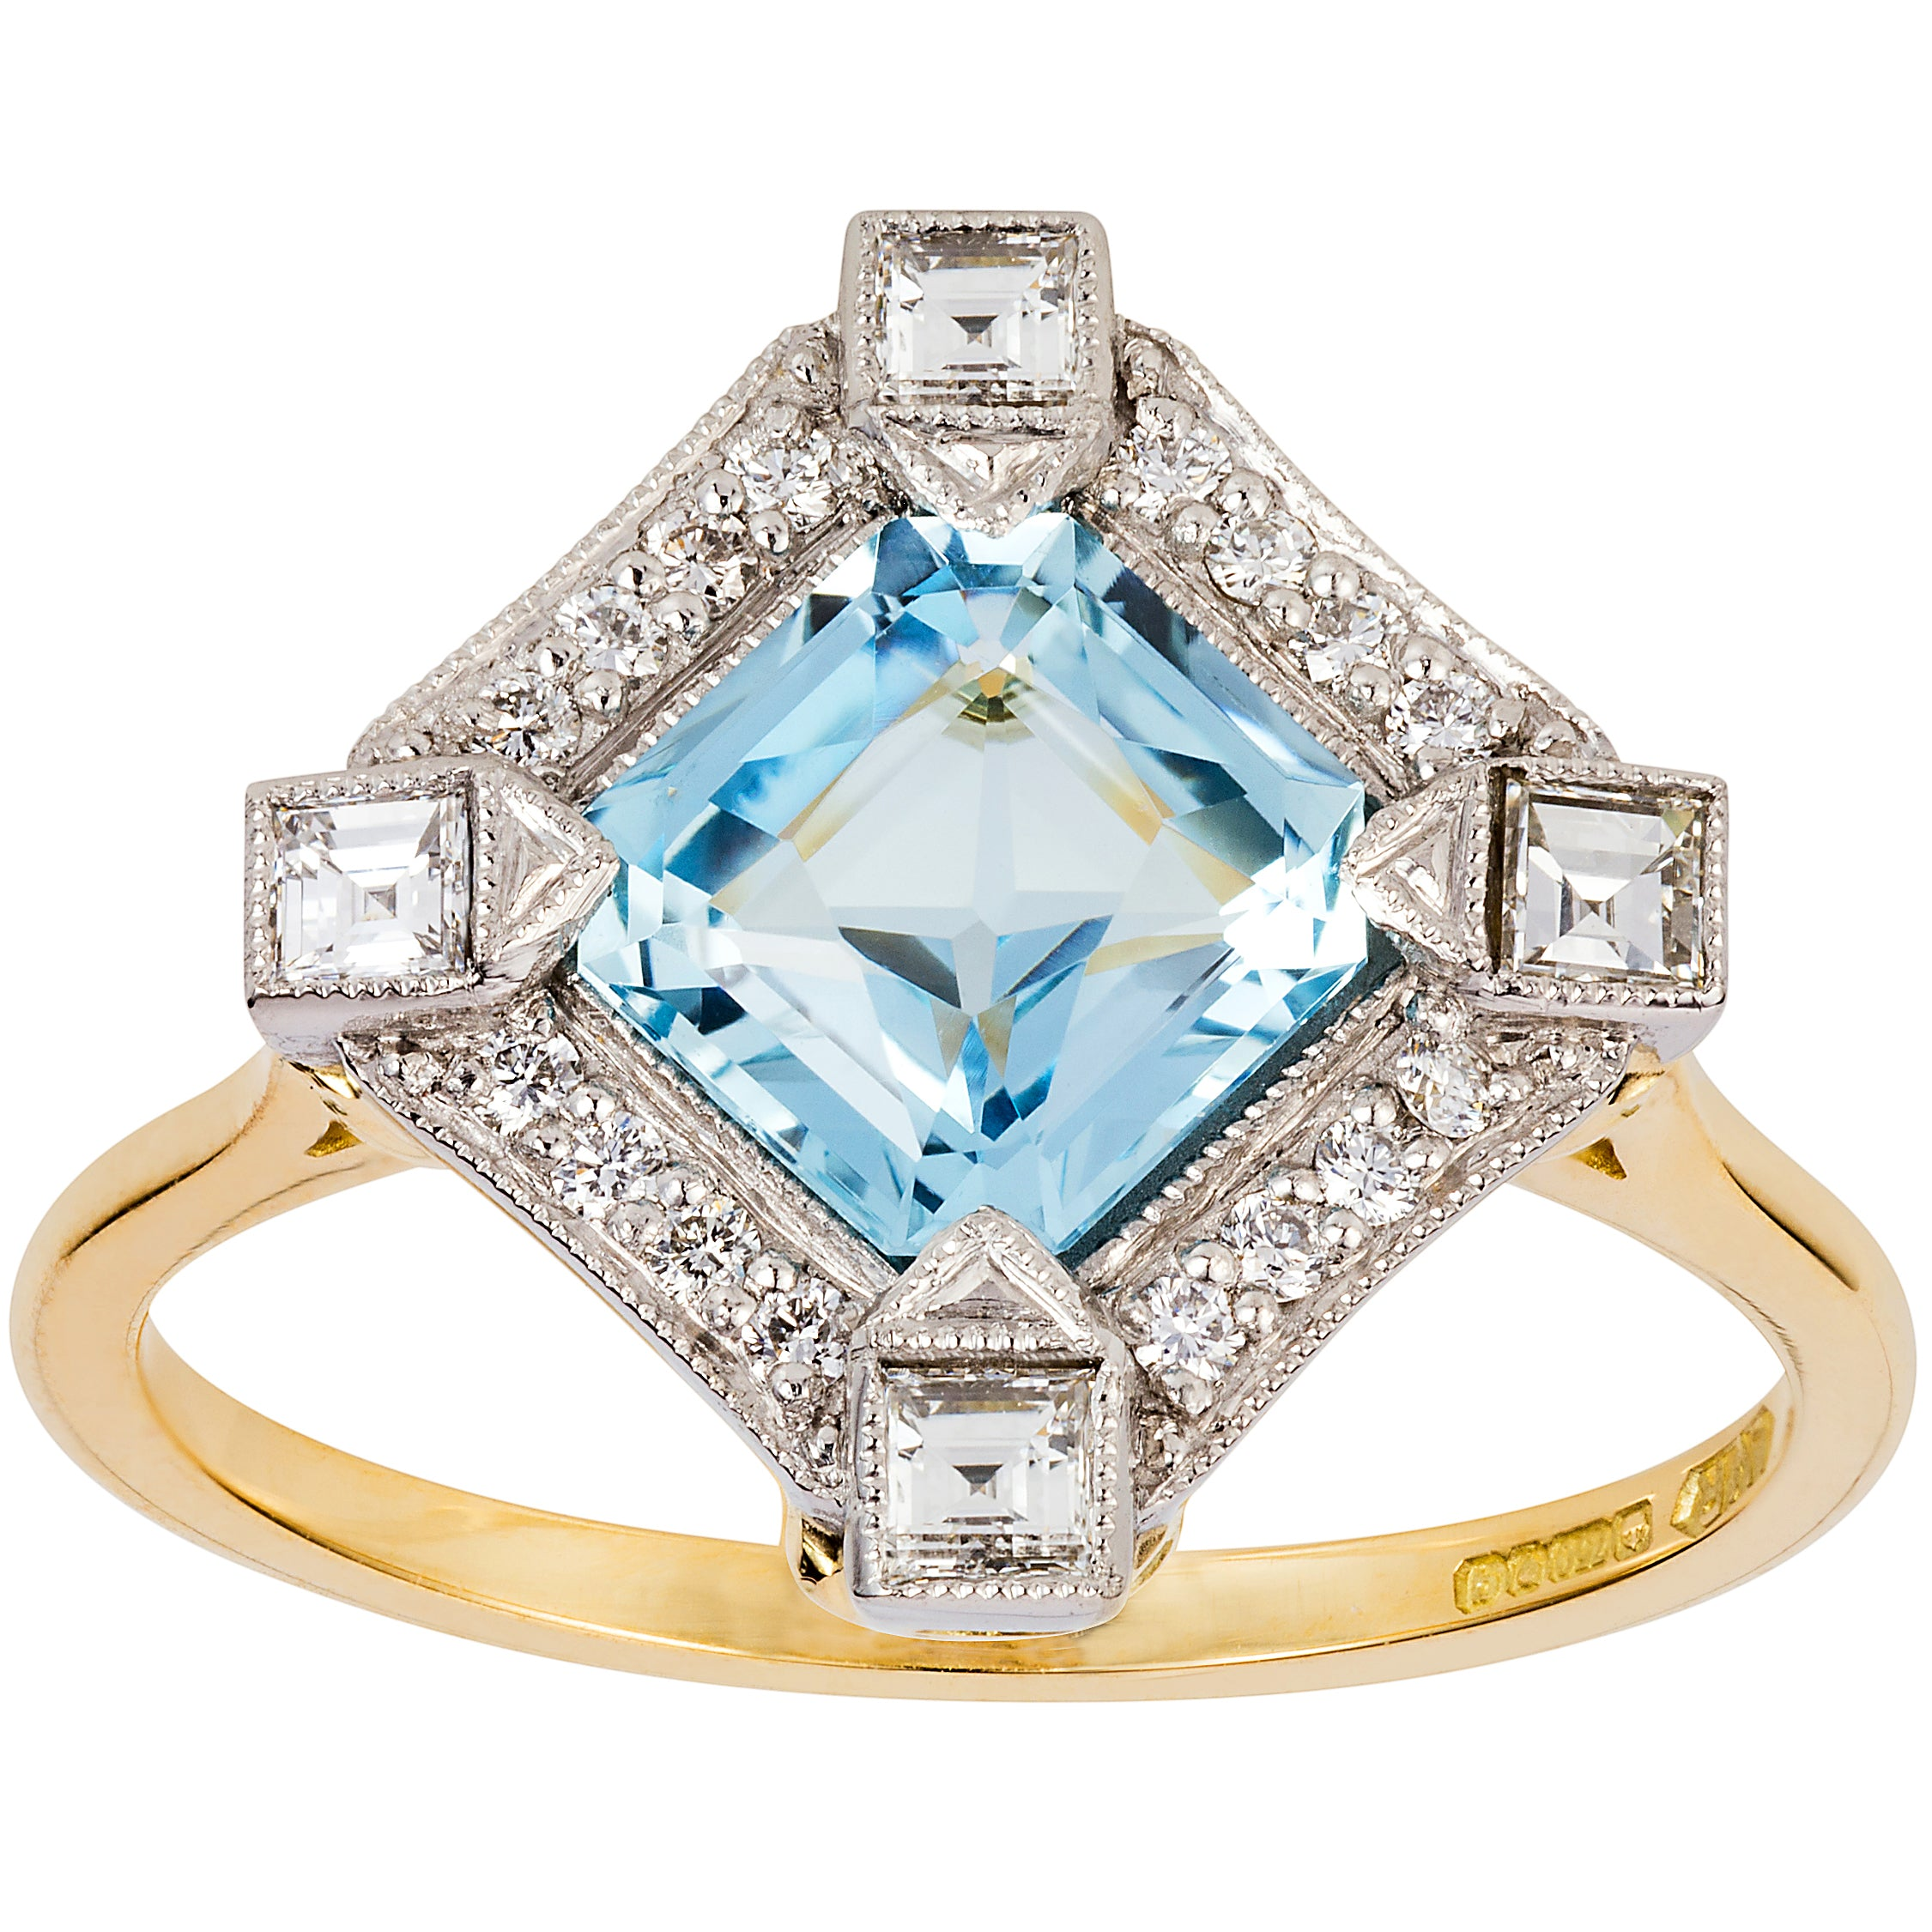 Art Deco Inspired Aquamarine and Diamond Cluster Ring in Platinum and Yellow Gold - London Victorian Ring UK